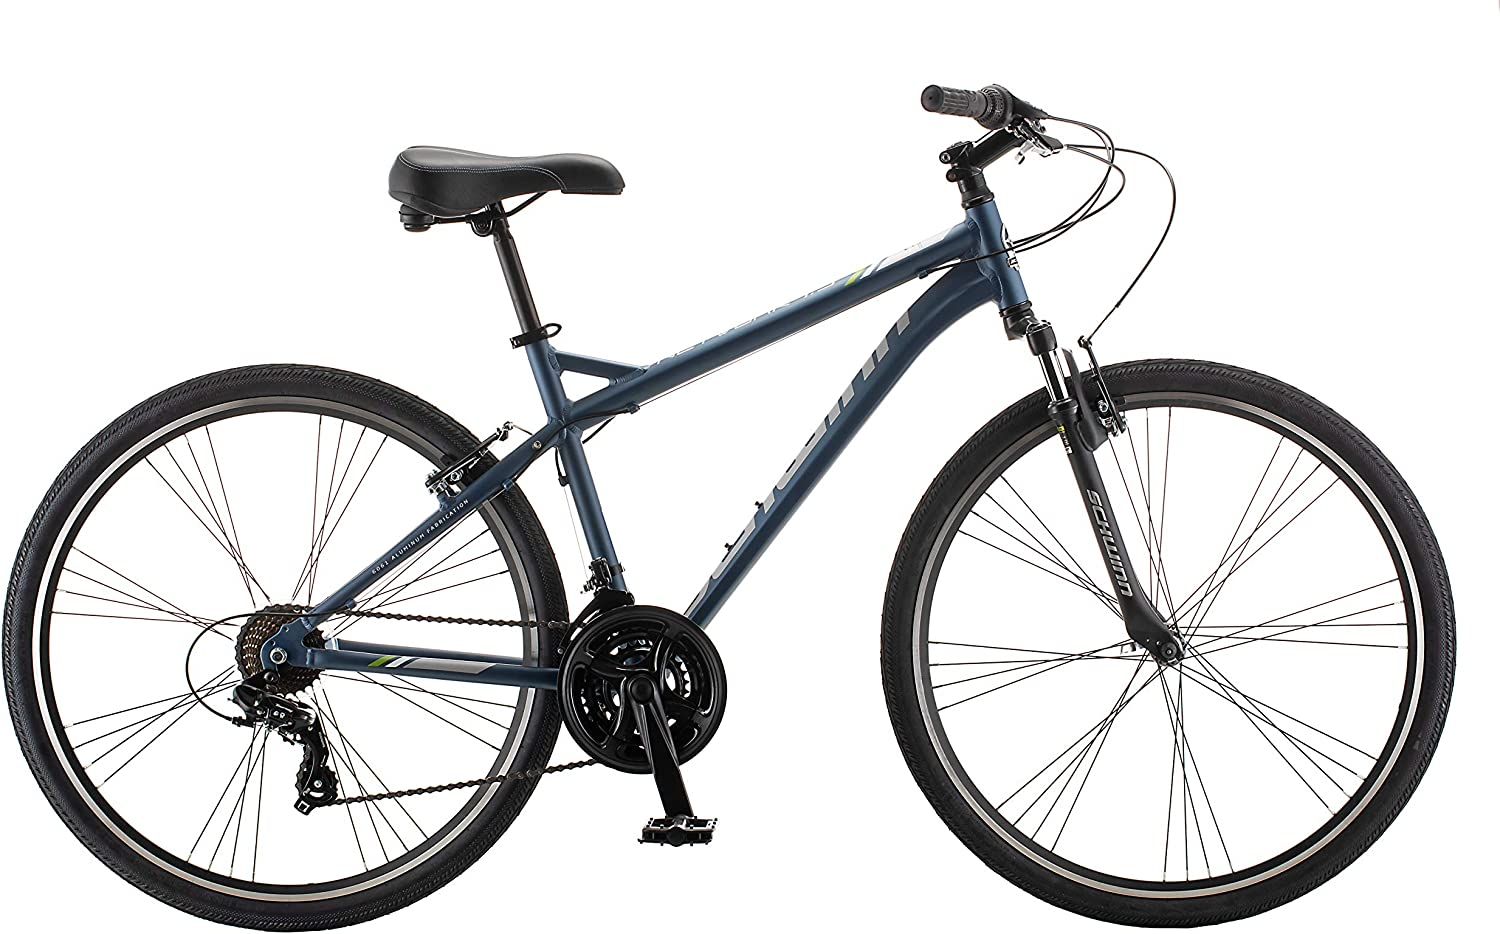 best hybrid bikes under 1000: Schwinn Network Hybrid Bike,15-18-inch